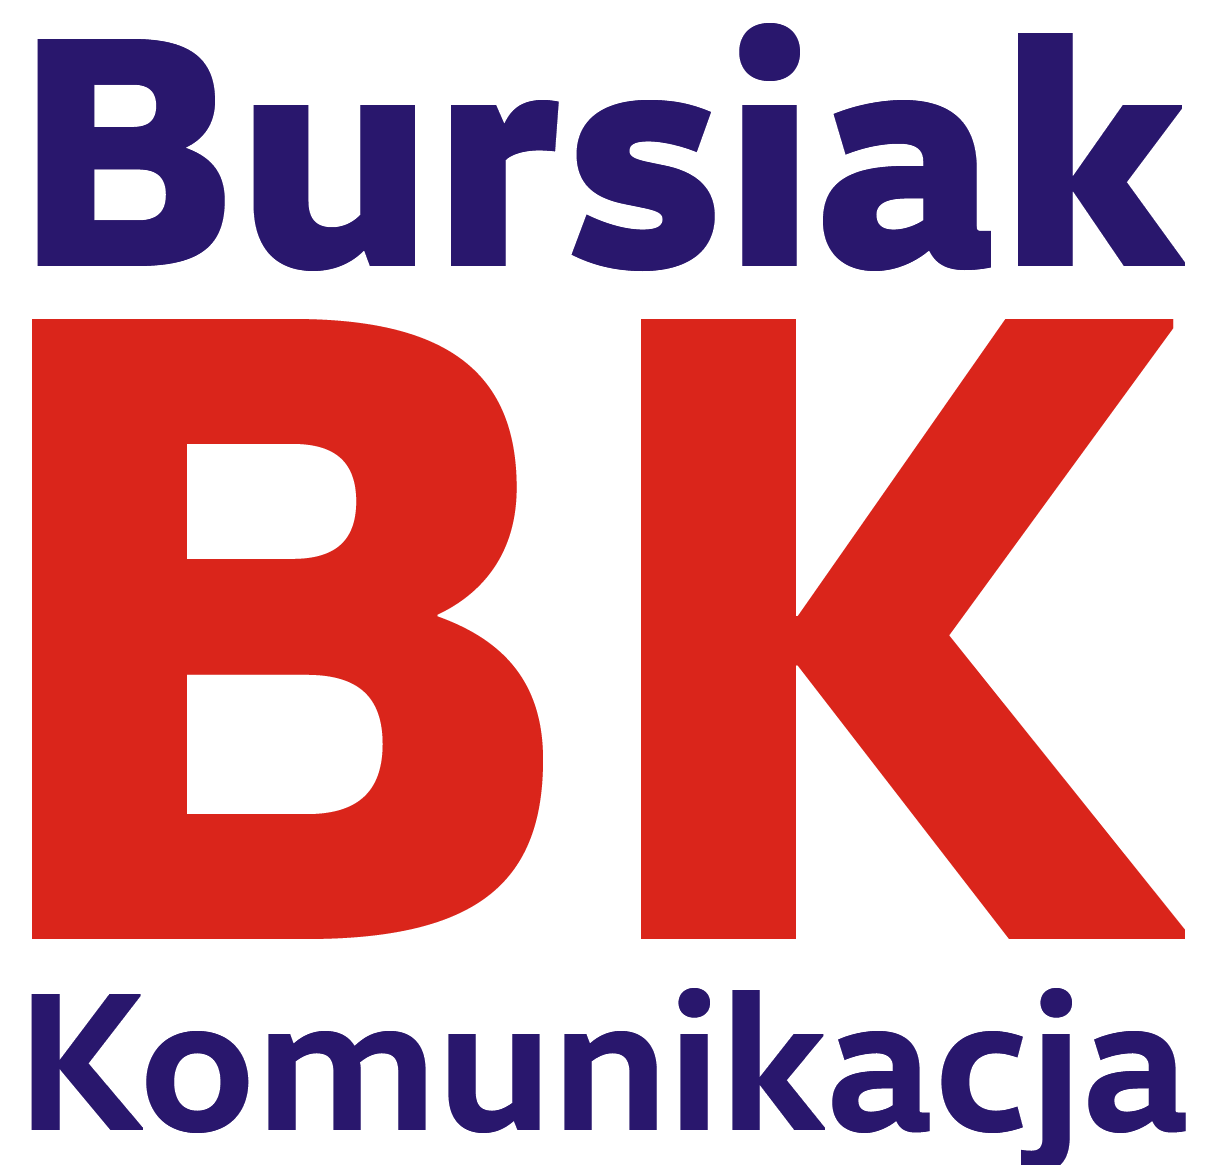 Bursiak